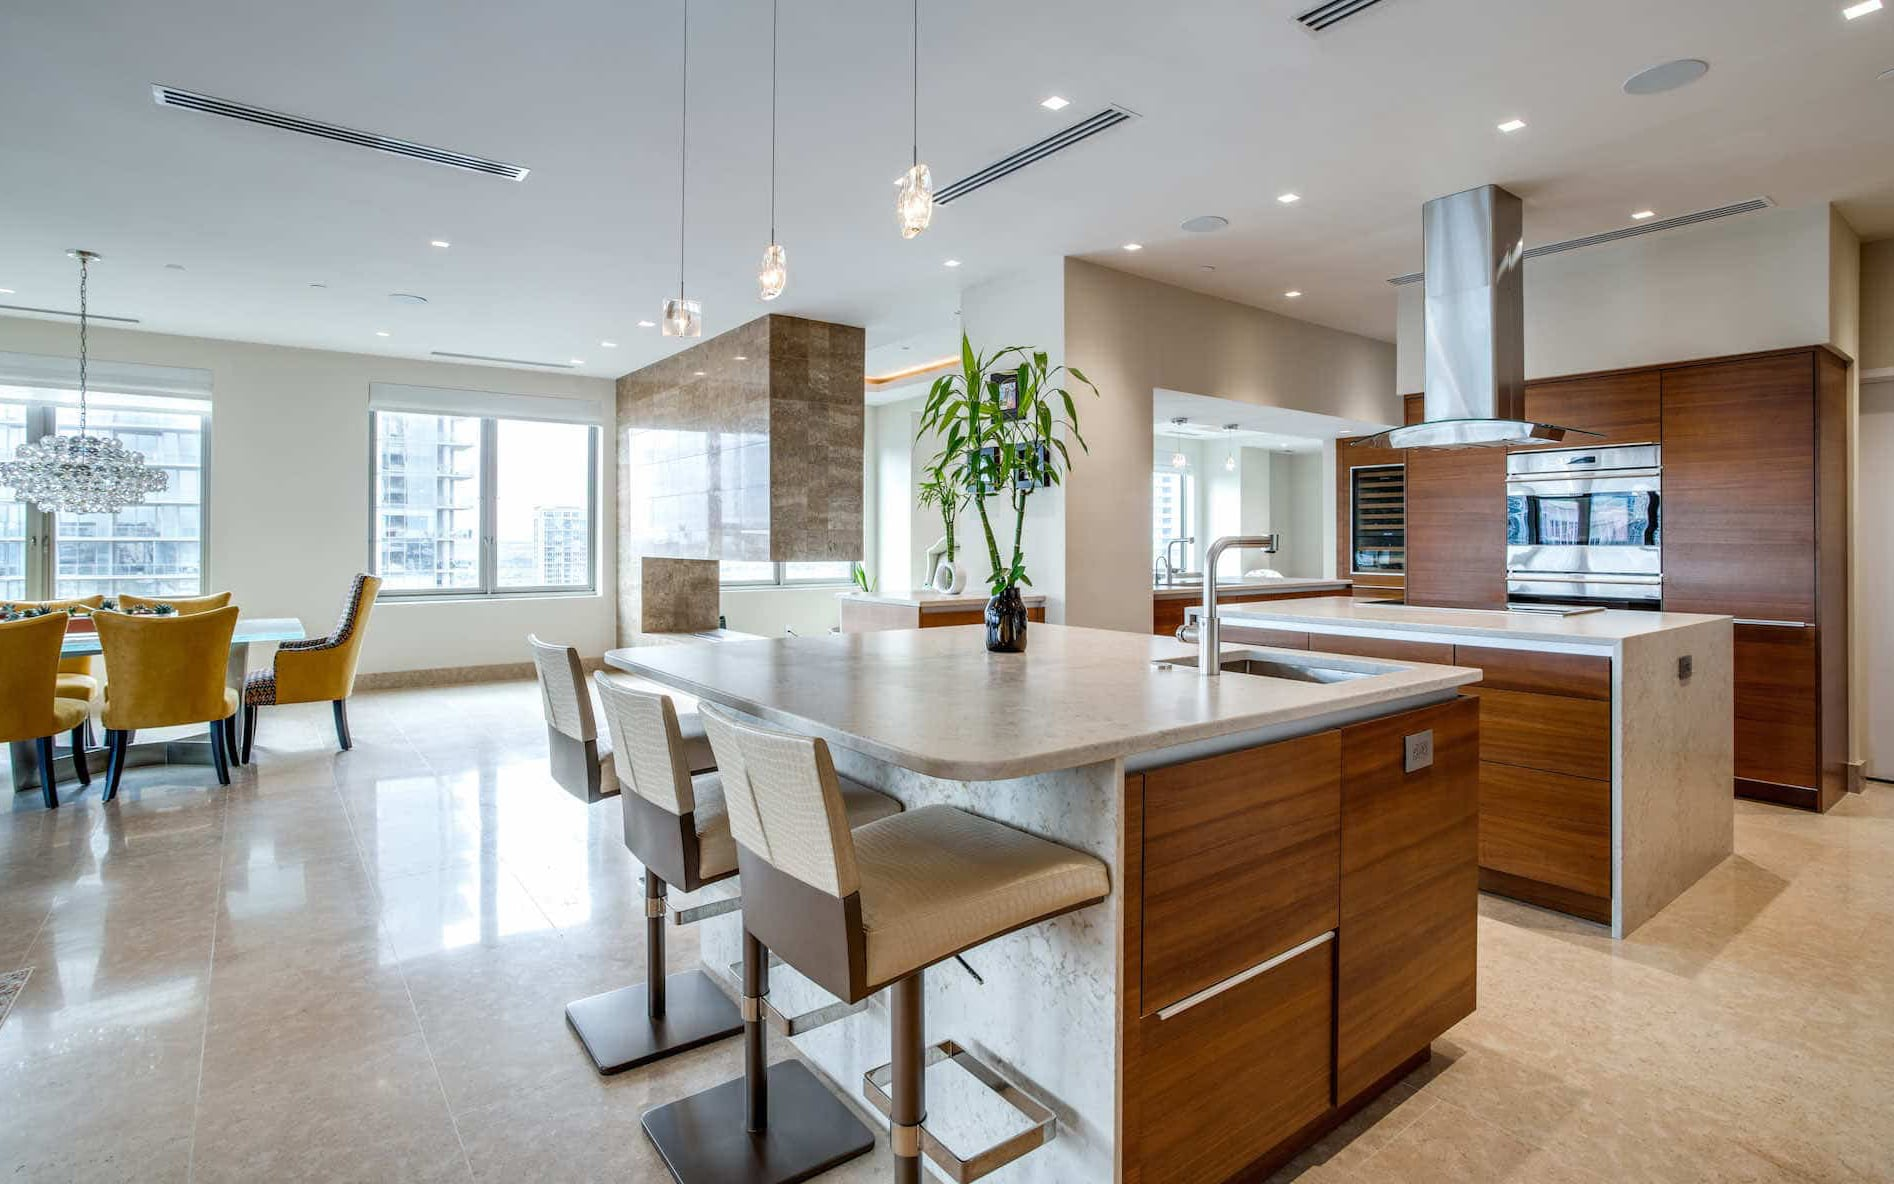 This highrise condo has a contemporary kitchen with two island areas for lots of gathering space